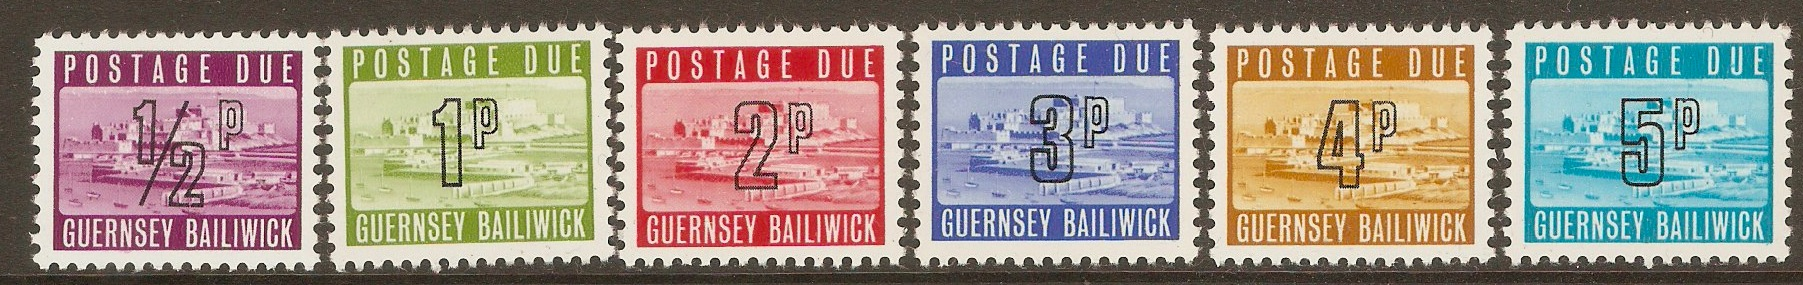 Guernsey 1971 Postage due - Low value sequence. SGD8-SGD13.